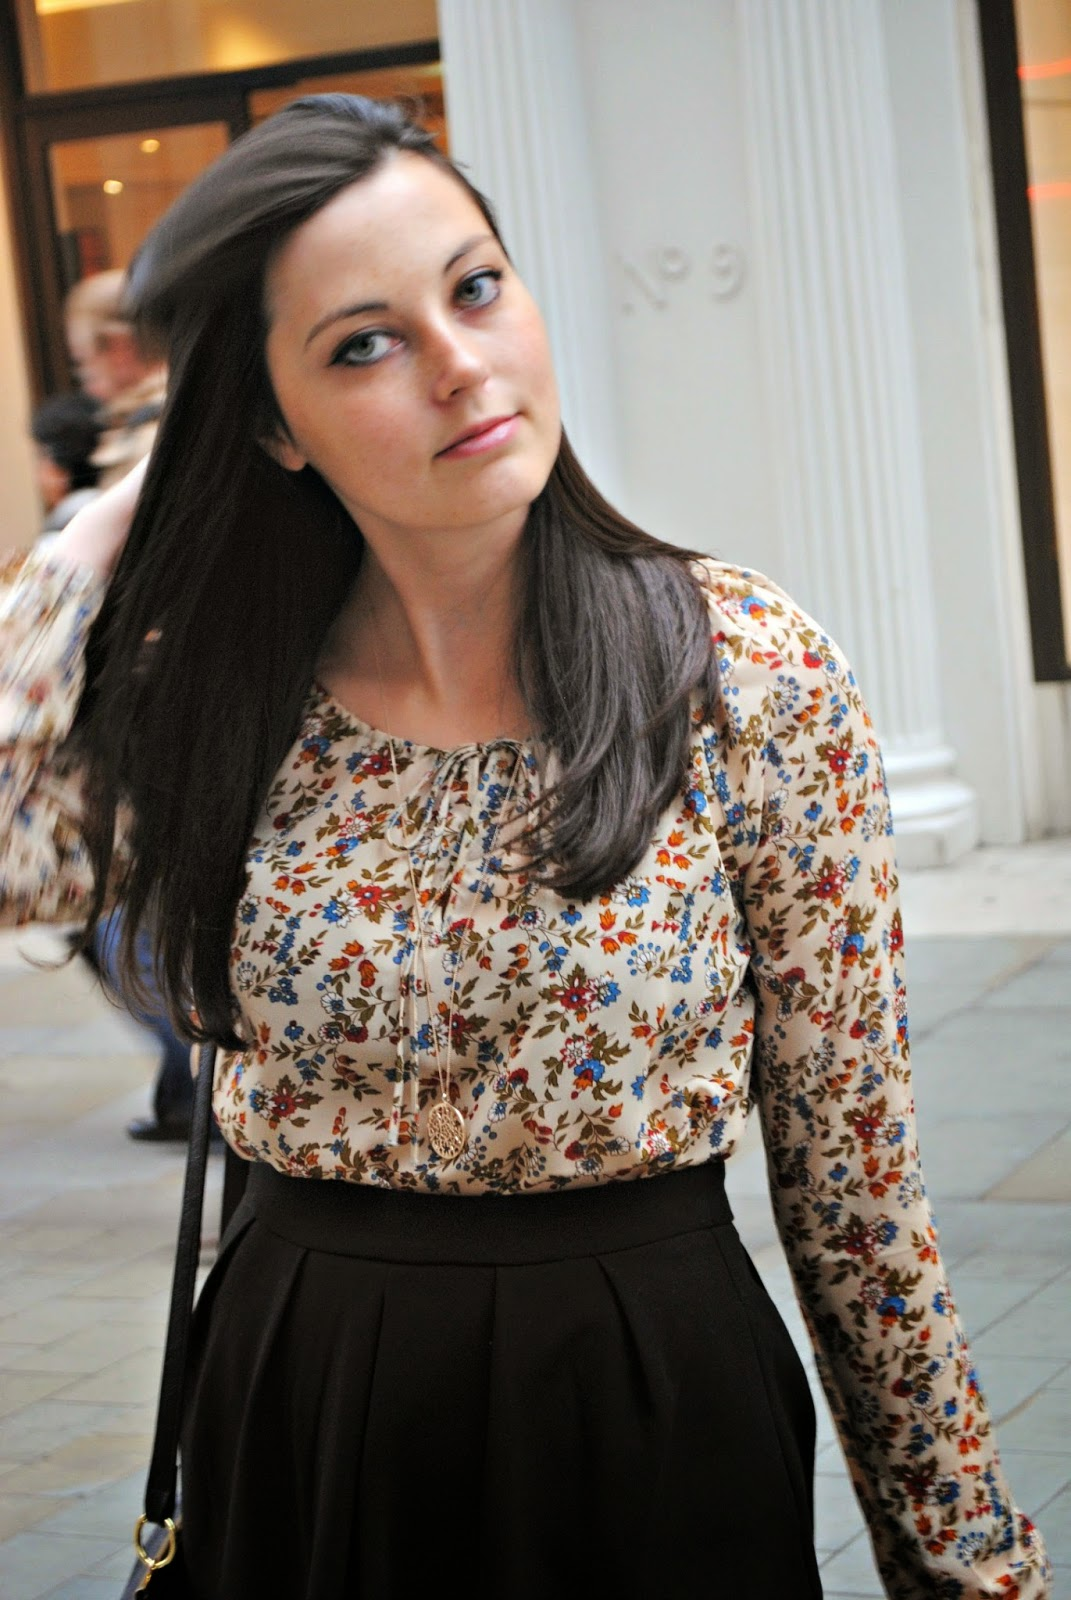 Stradivarius boho vintage blouse fashion post